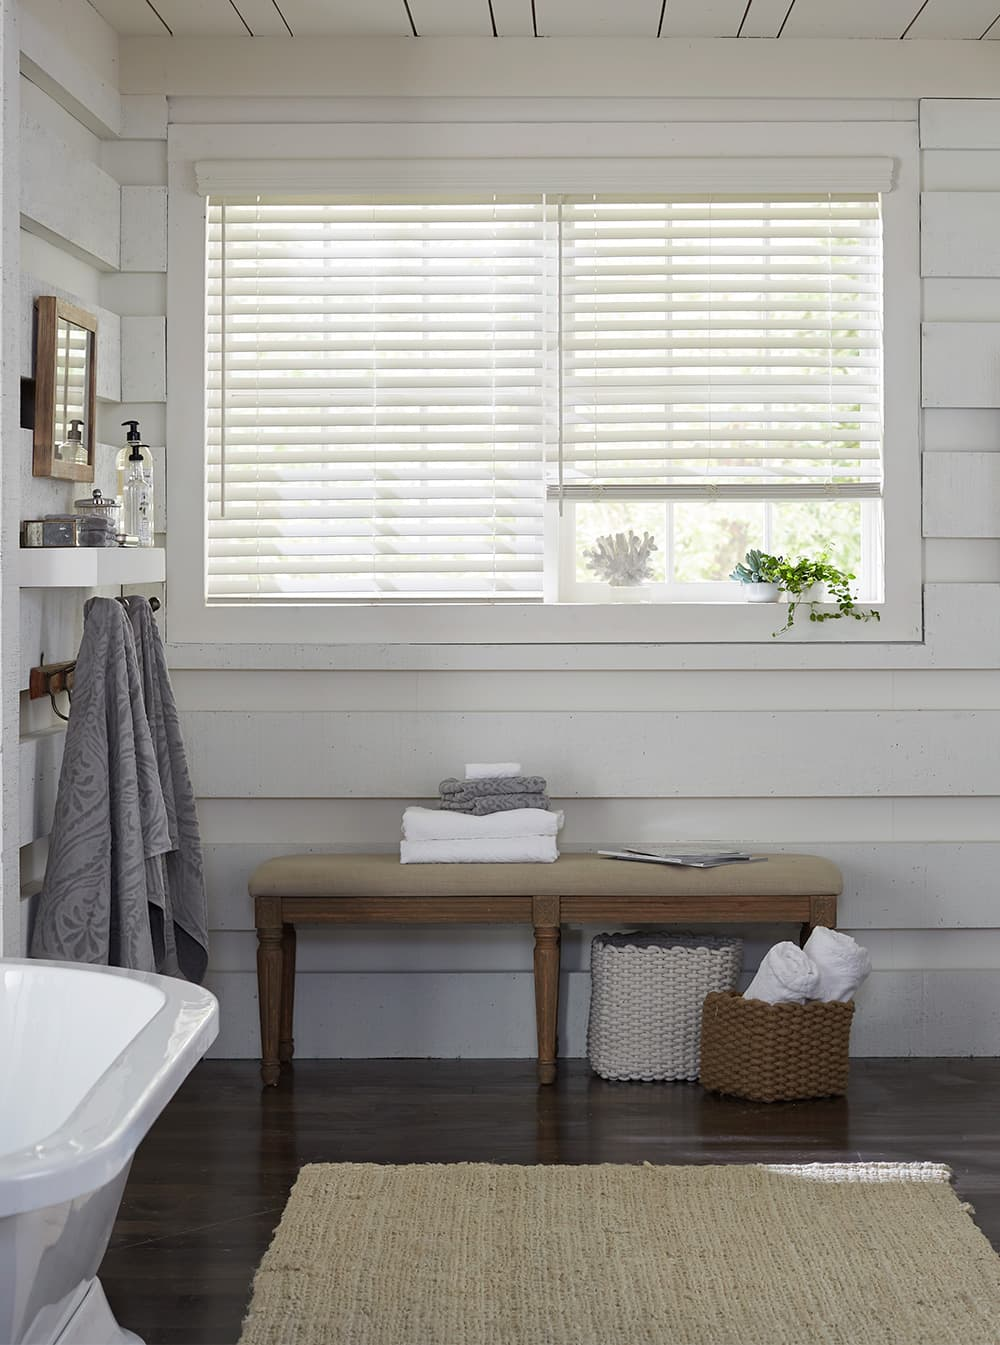 Charmant Bathroom With Wood Walls Painted White And Window With Two White Wood Blinds